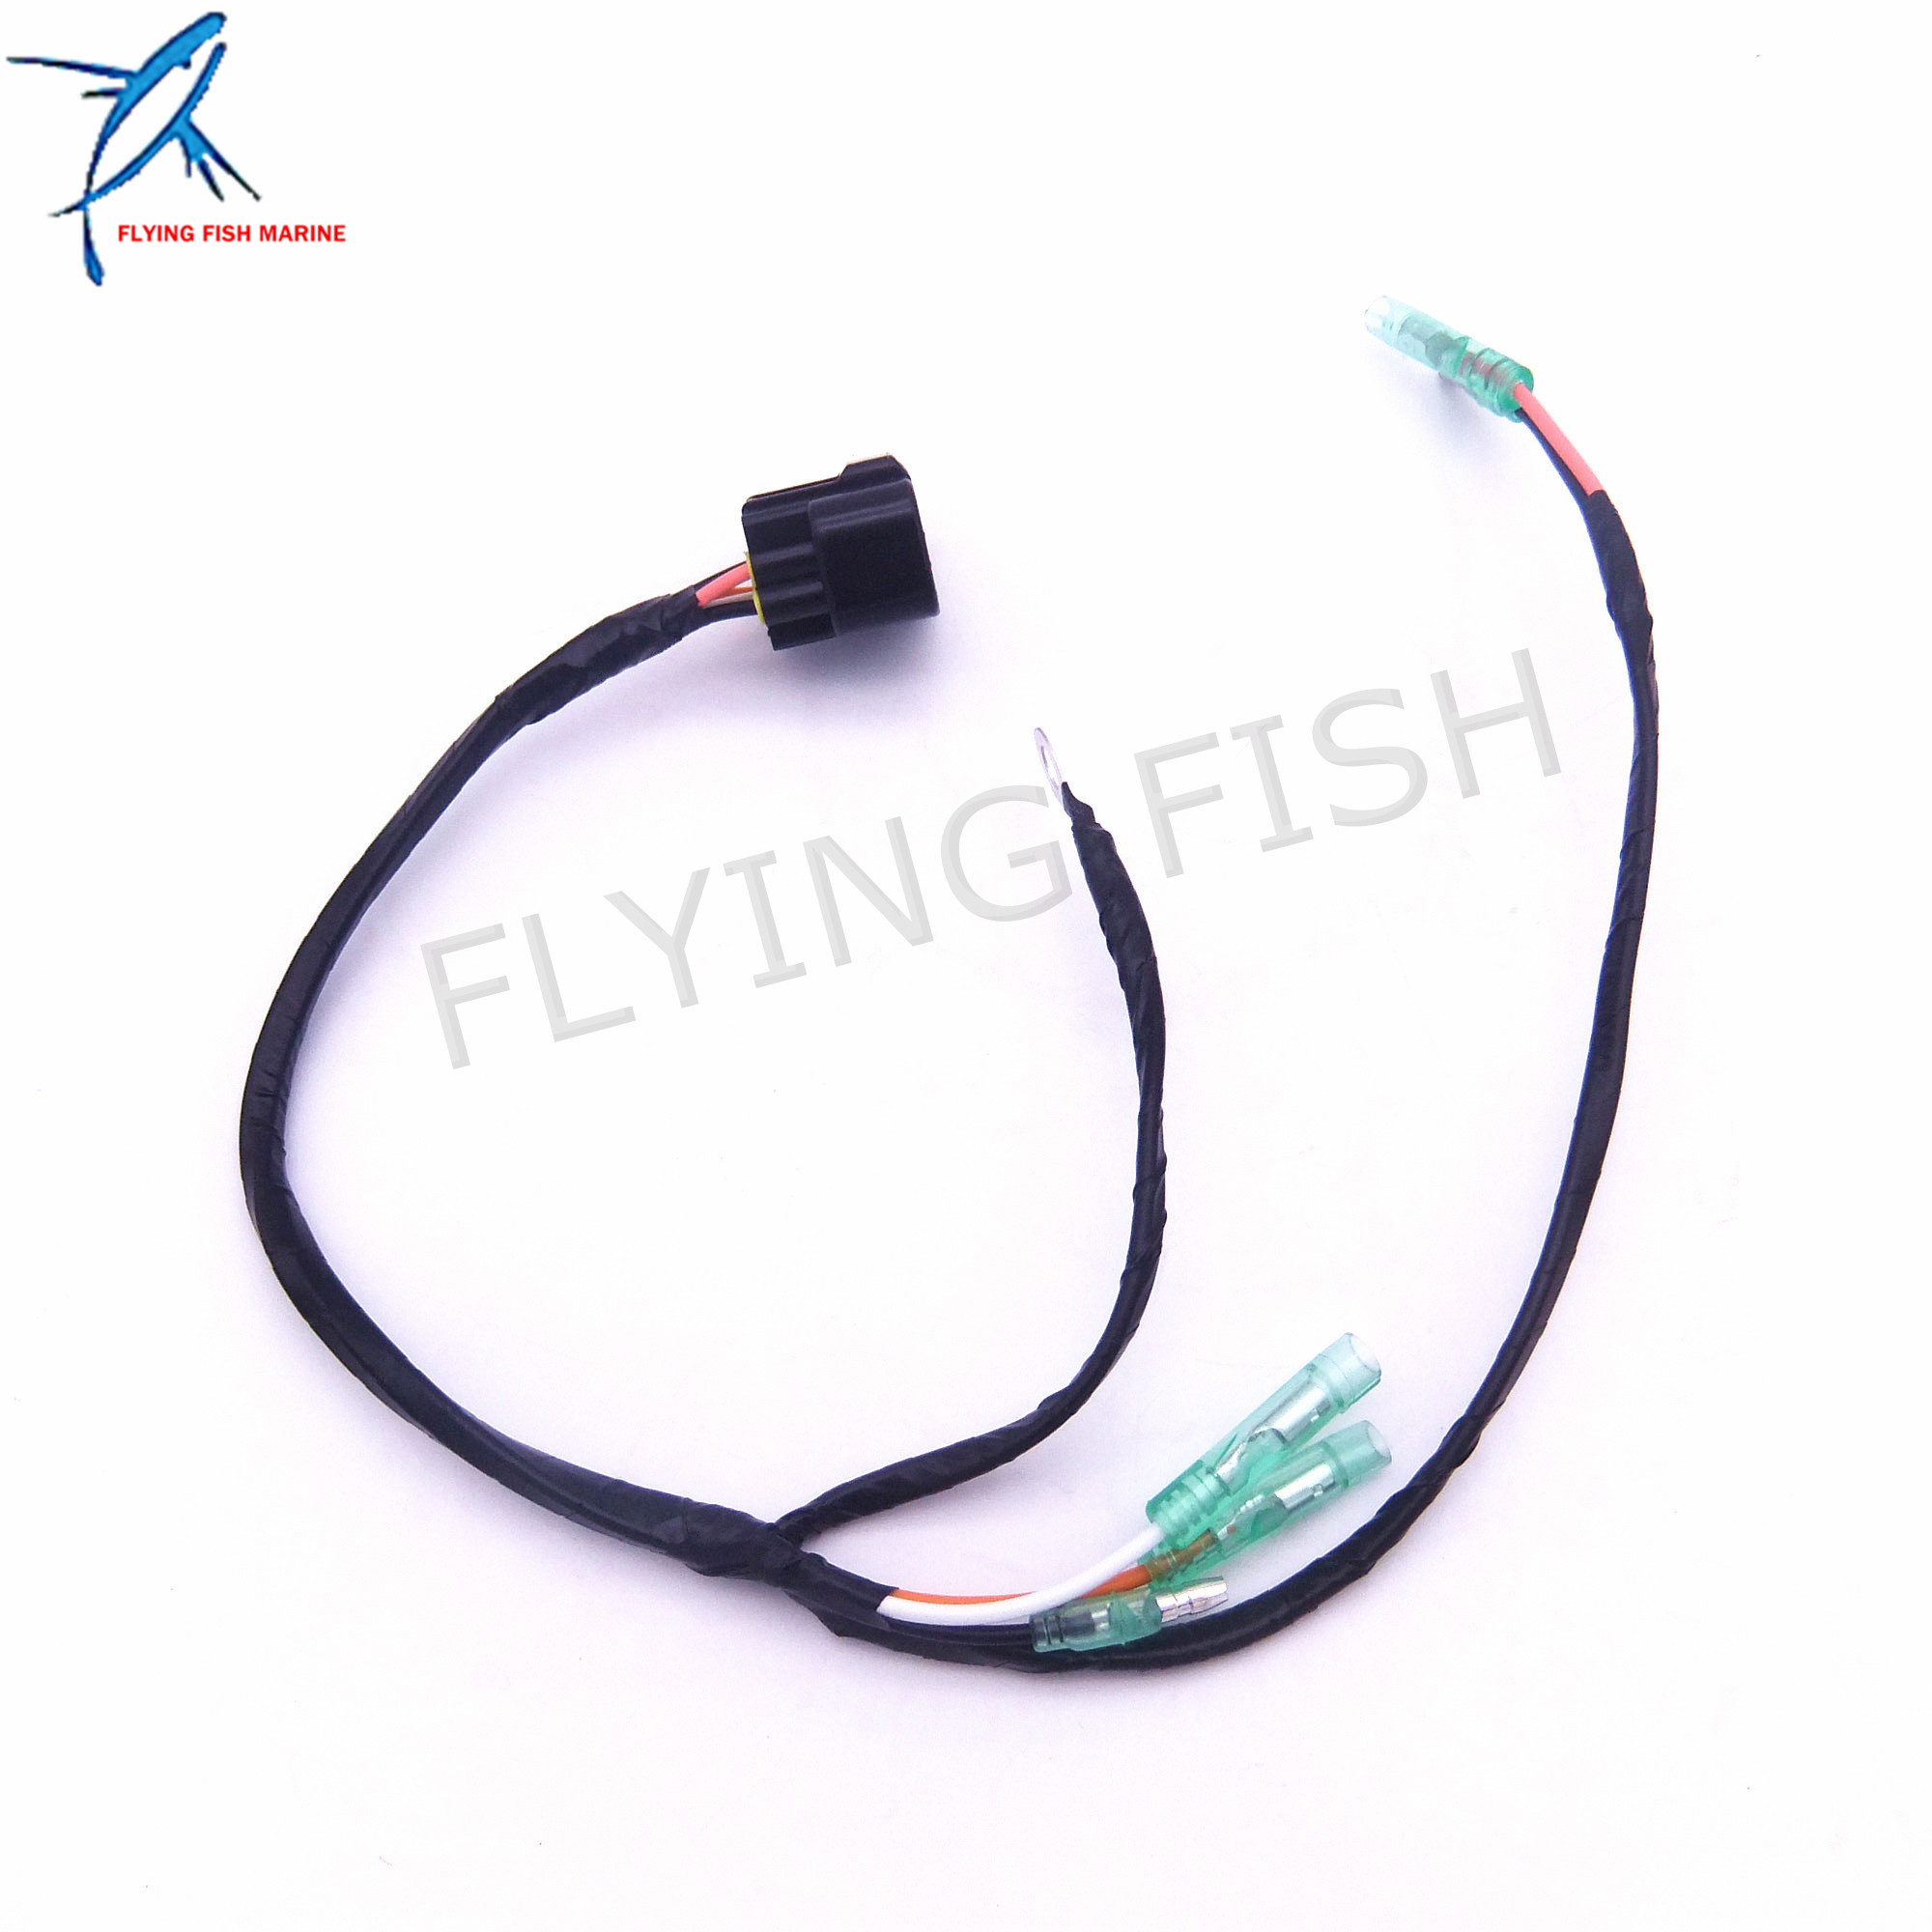 Boat Motor Wiring Harness Schematic Diagram Electronic Jet Engine Outboard T36 04000801 Wire Of Cdi Unit For Parsun Hdx Rhaliexpress